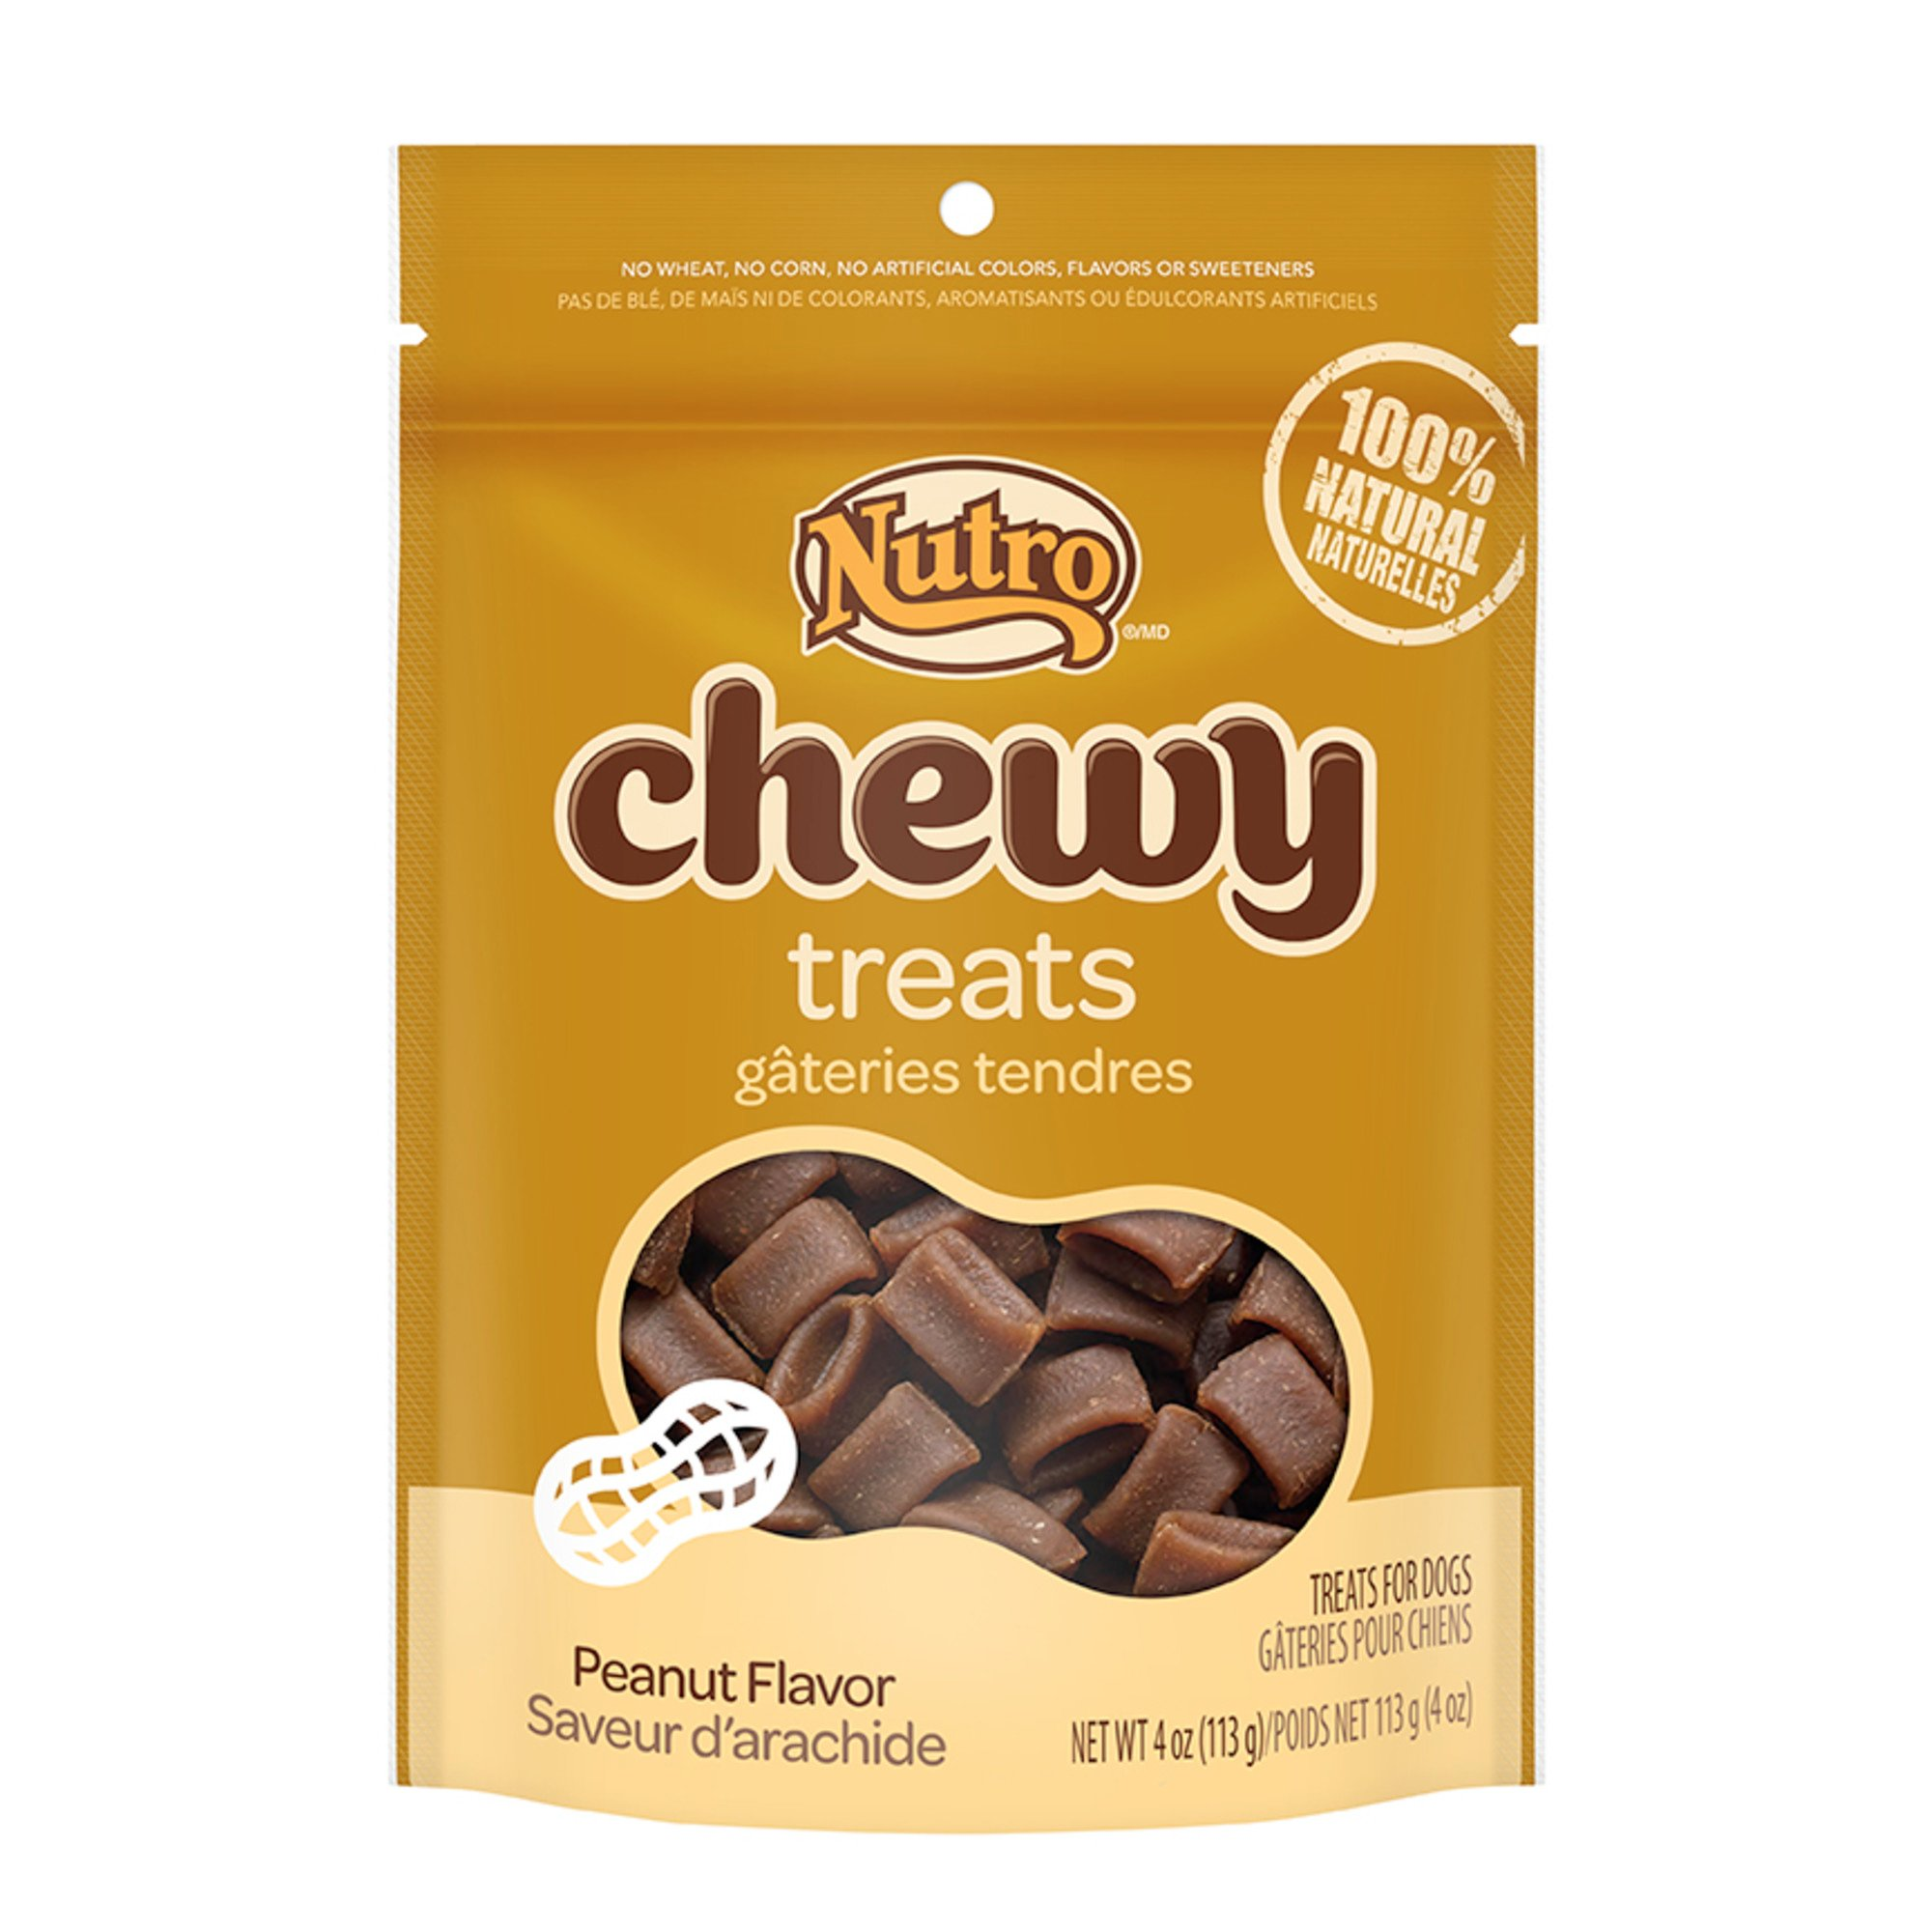 Nutro Chewy Dog Treats with Peanut Butter